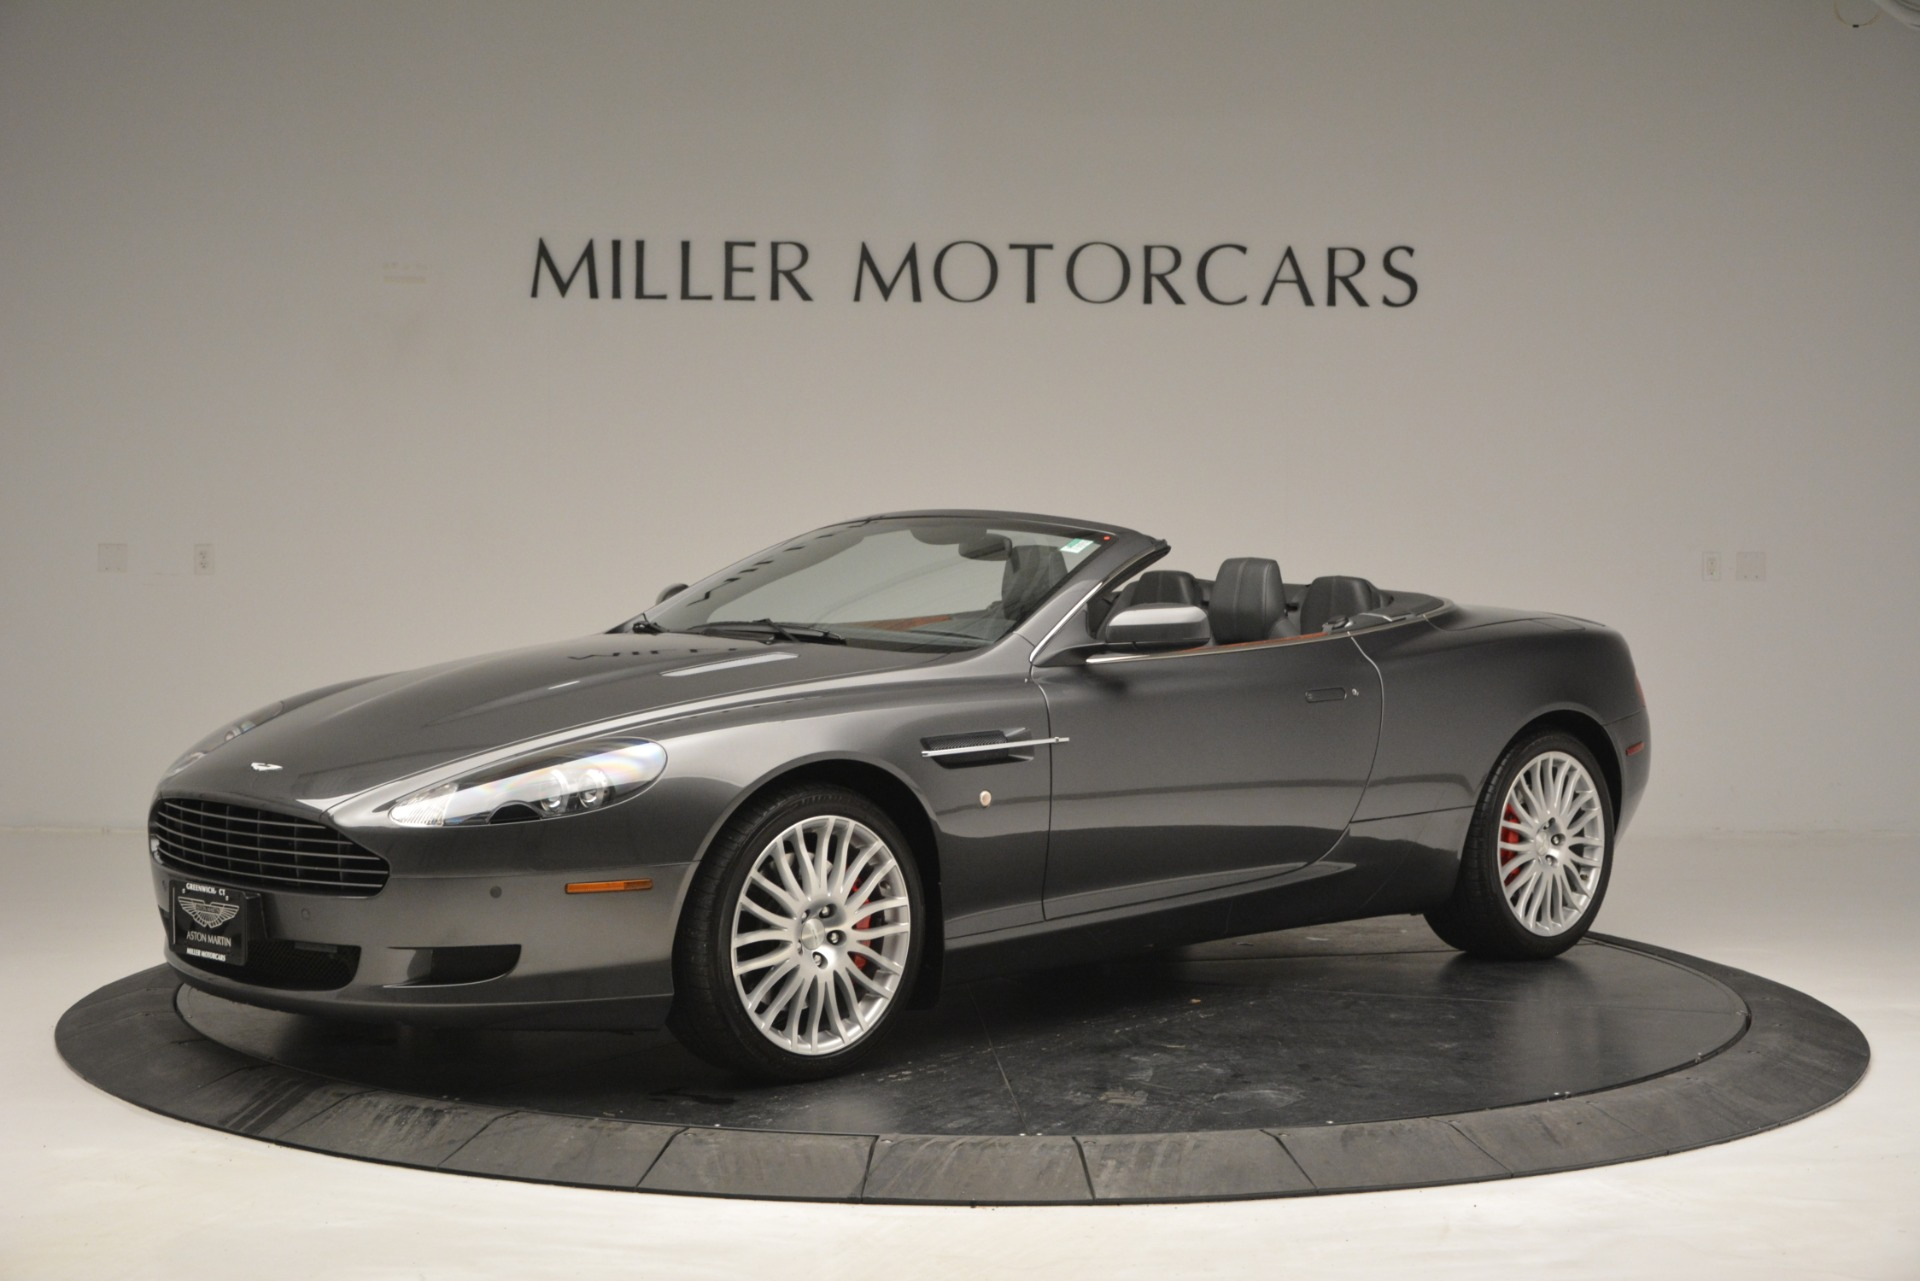 Used 2009 Aston Martin DB9 Convertible for sale Sold at Aston Martin of Greenwich in Greenwich CT 06830 1